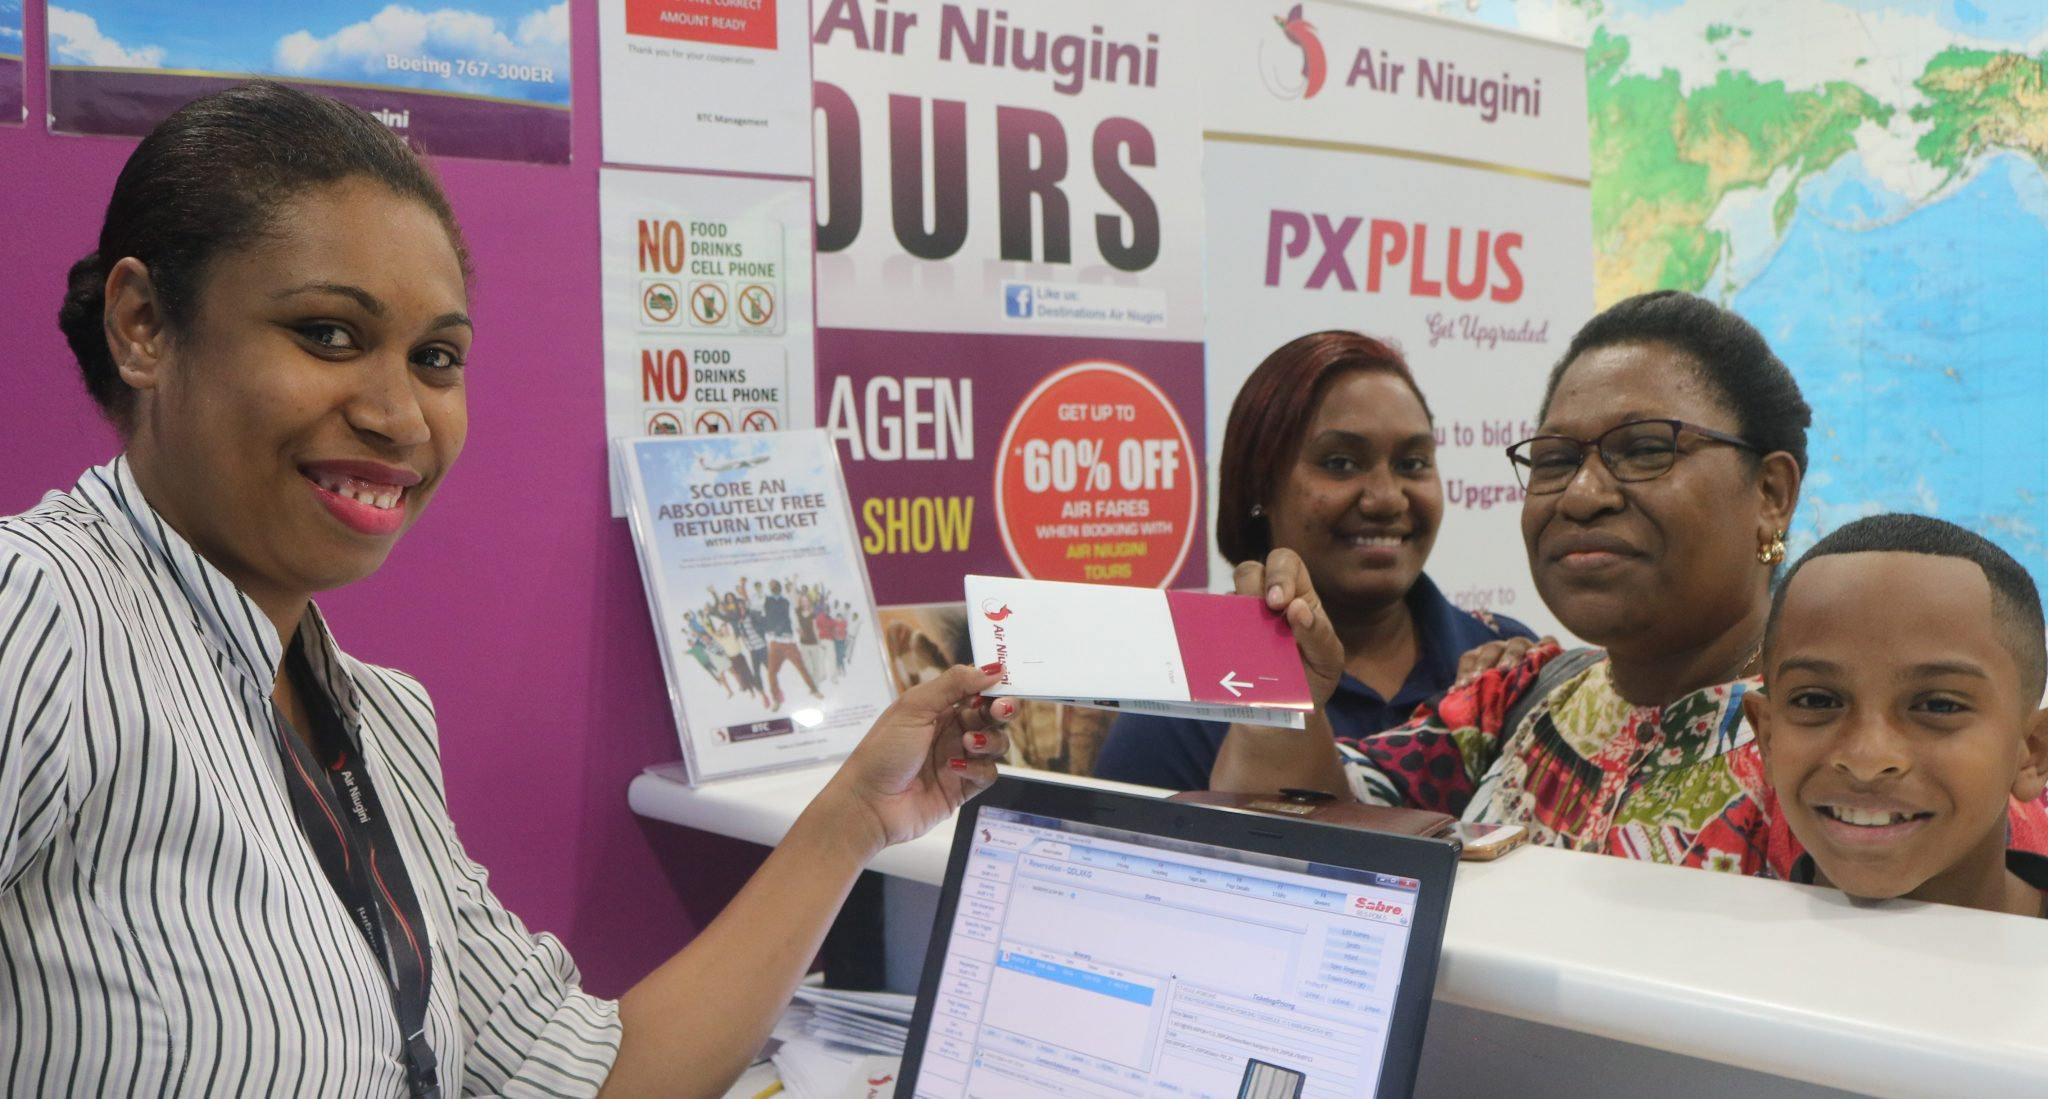 How To Get Free Tickets From Air Niugini